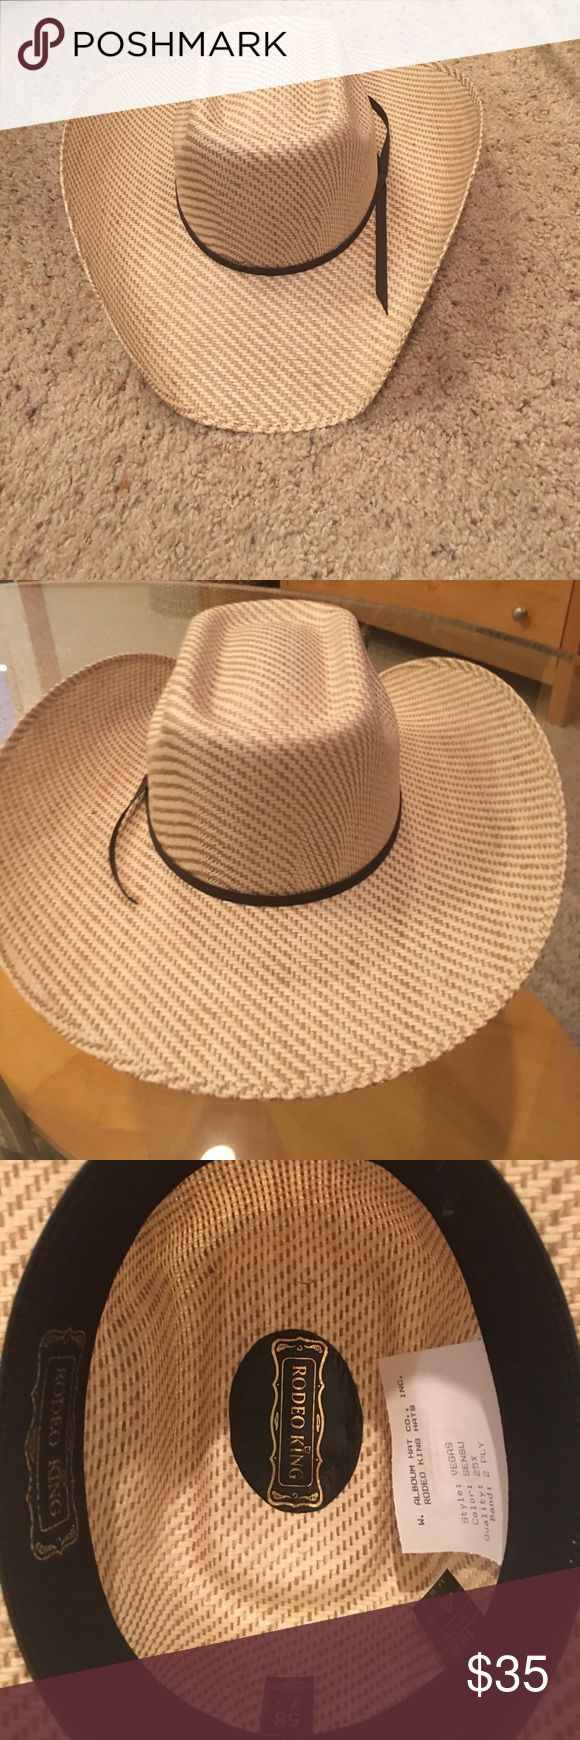 🤠 cowboy hat  size 7 1/4- men's or women's Beautiful straw cowboy hat size 7 1/4 Brand- Rodeo King Accessories Hats